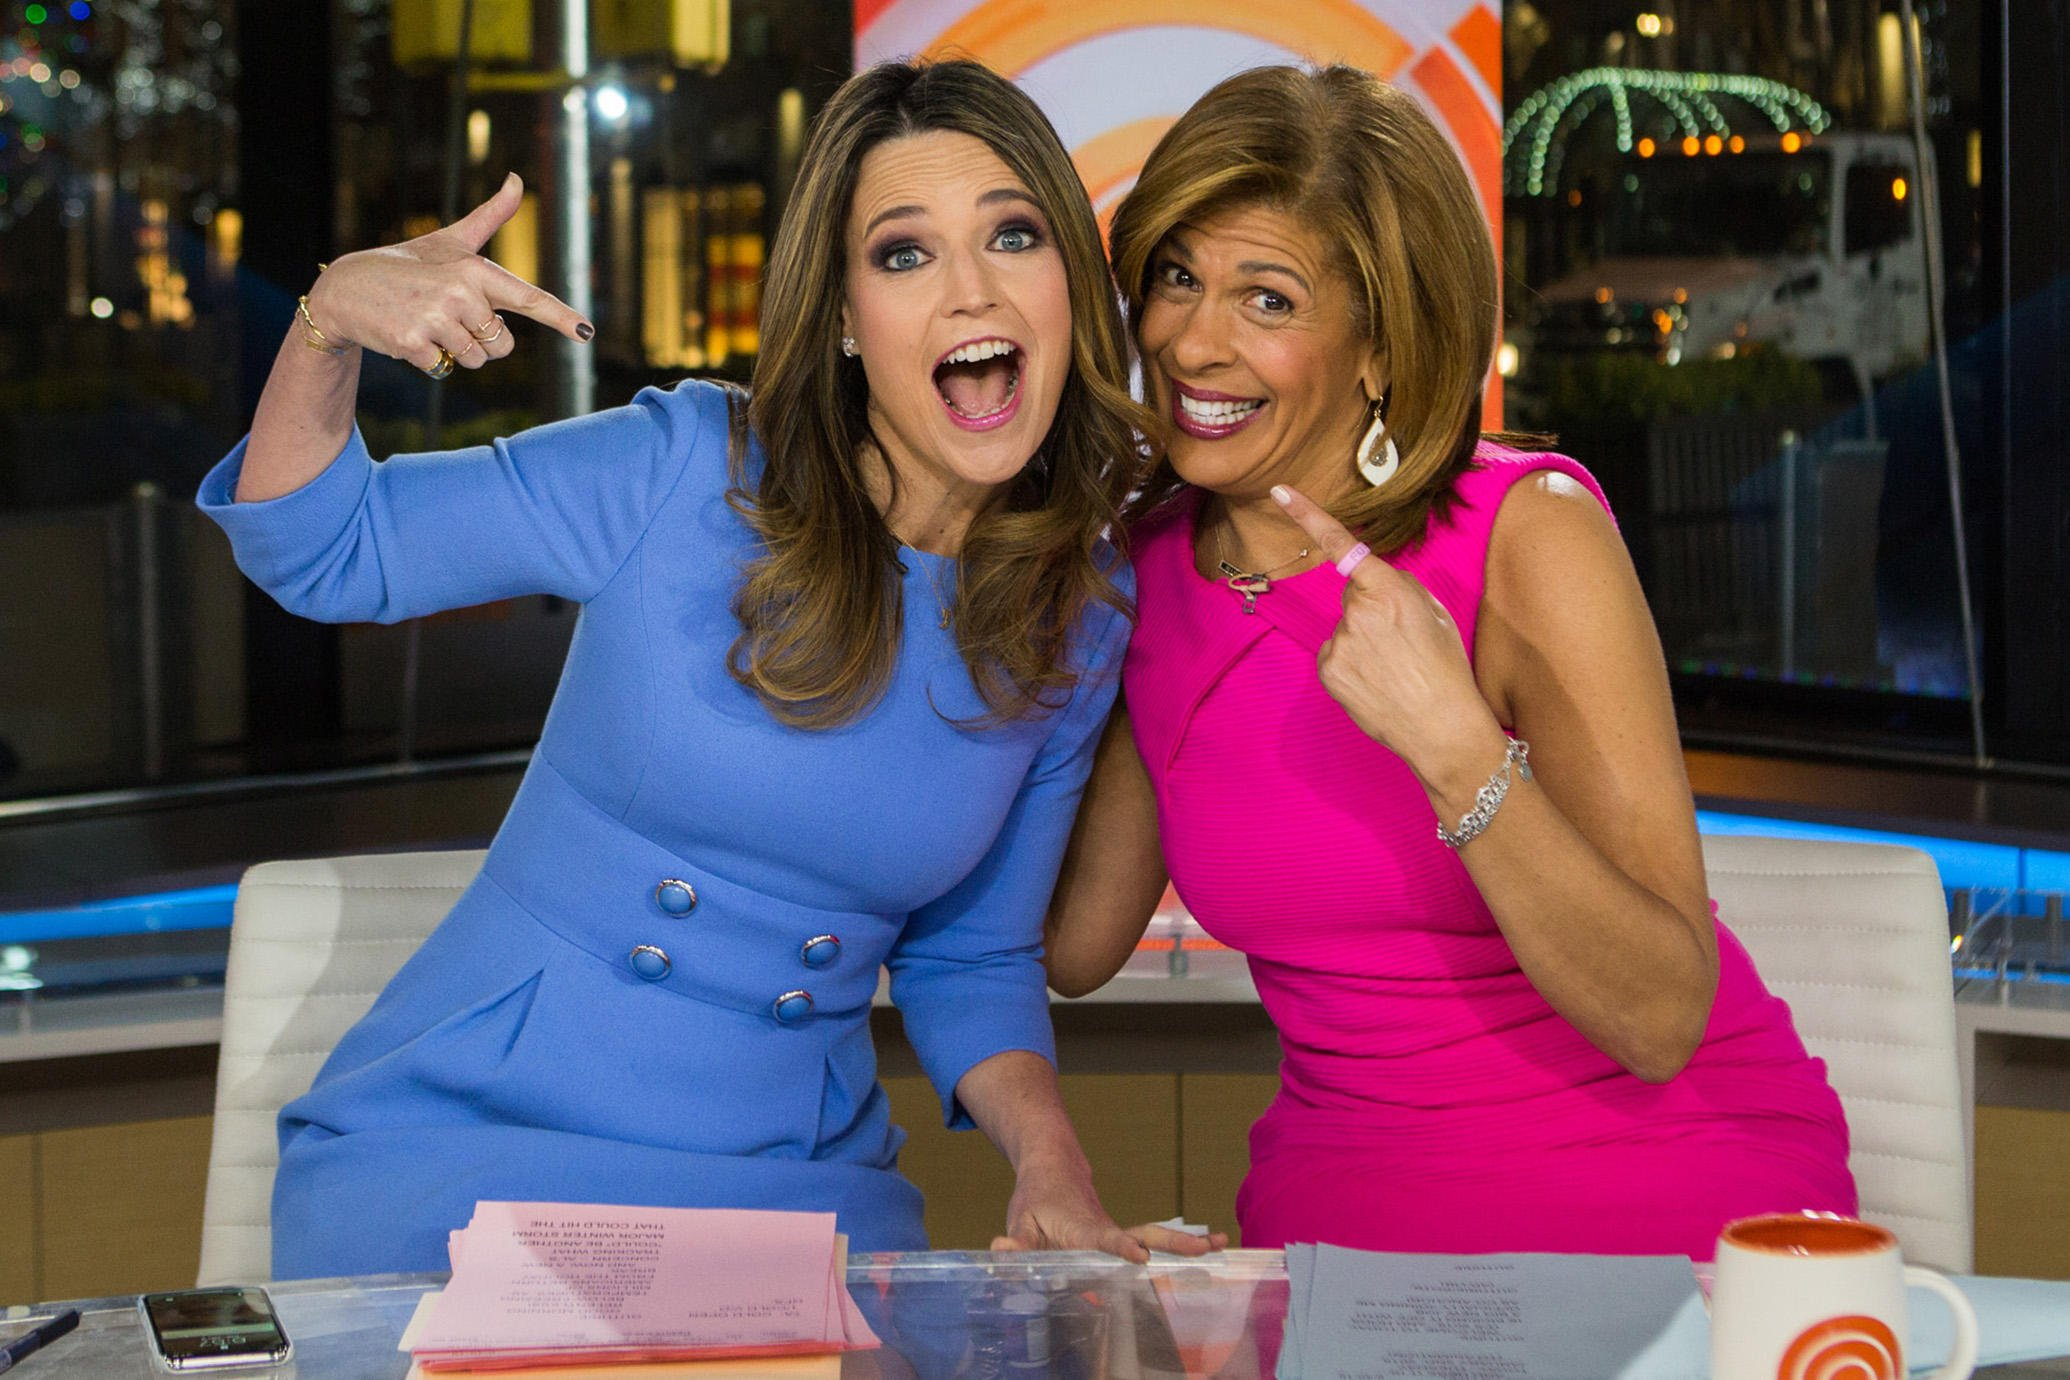 todayshow3 - 'Today' Show Finally Reveals Replacement For Disgraced Matt Lauer